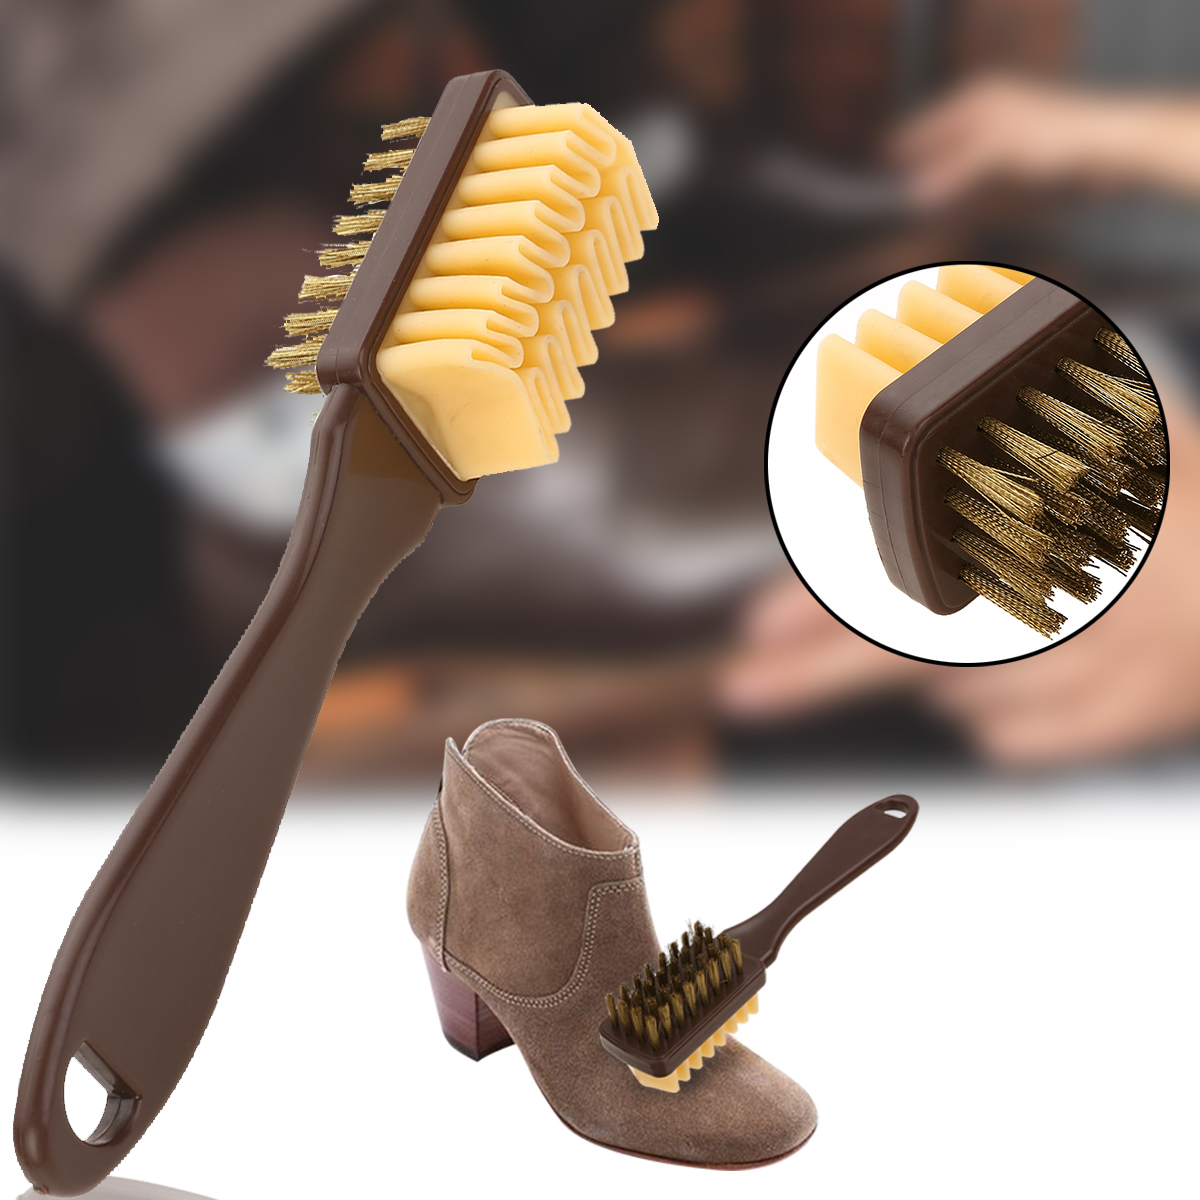 1pc 2-Sided Cleaning Brush & Rubber Eraser Set Suede Nubuck Shoes Boot Cleaner Practical Handbag Brushes